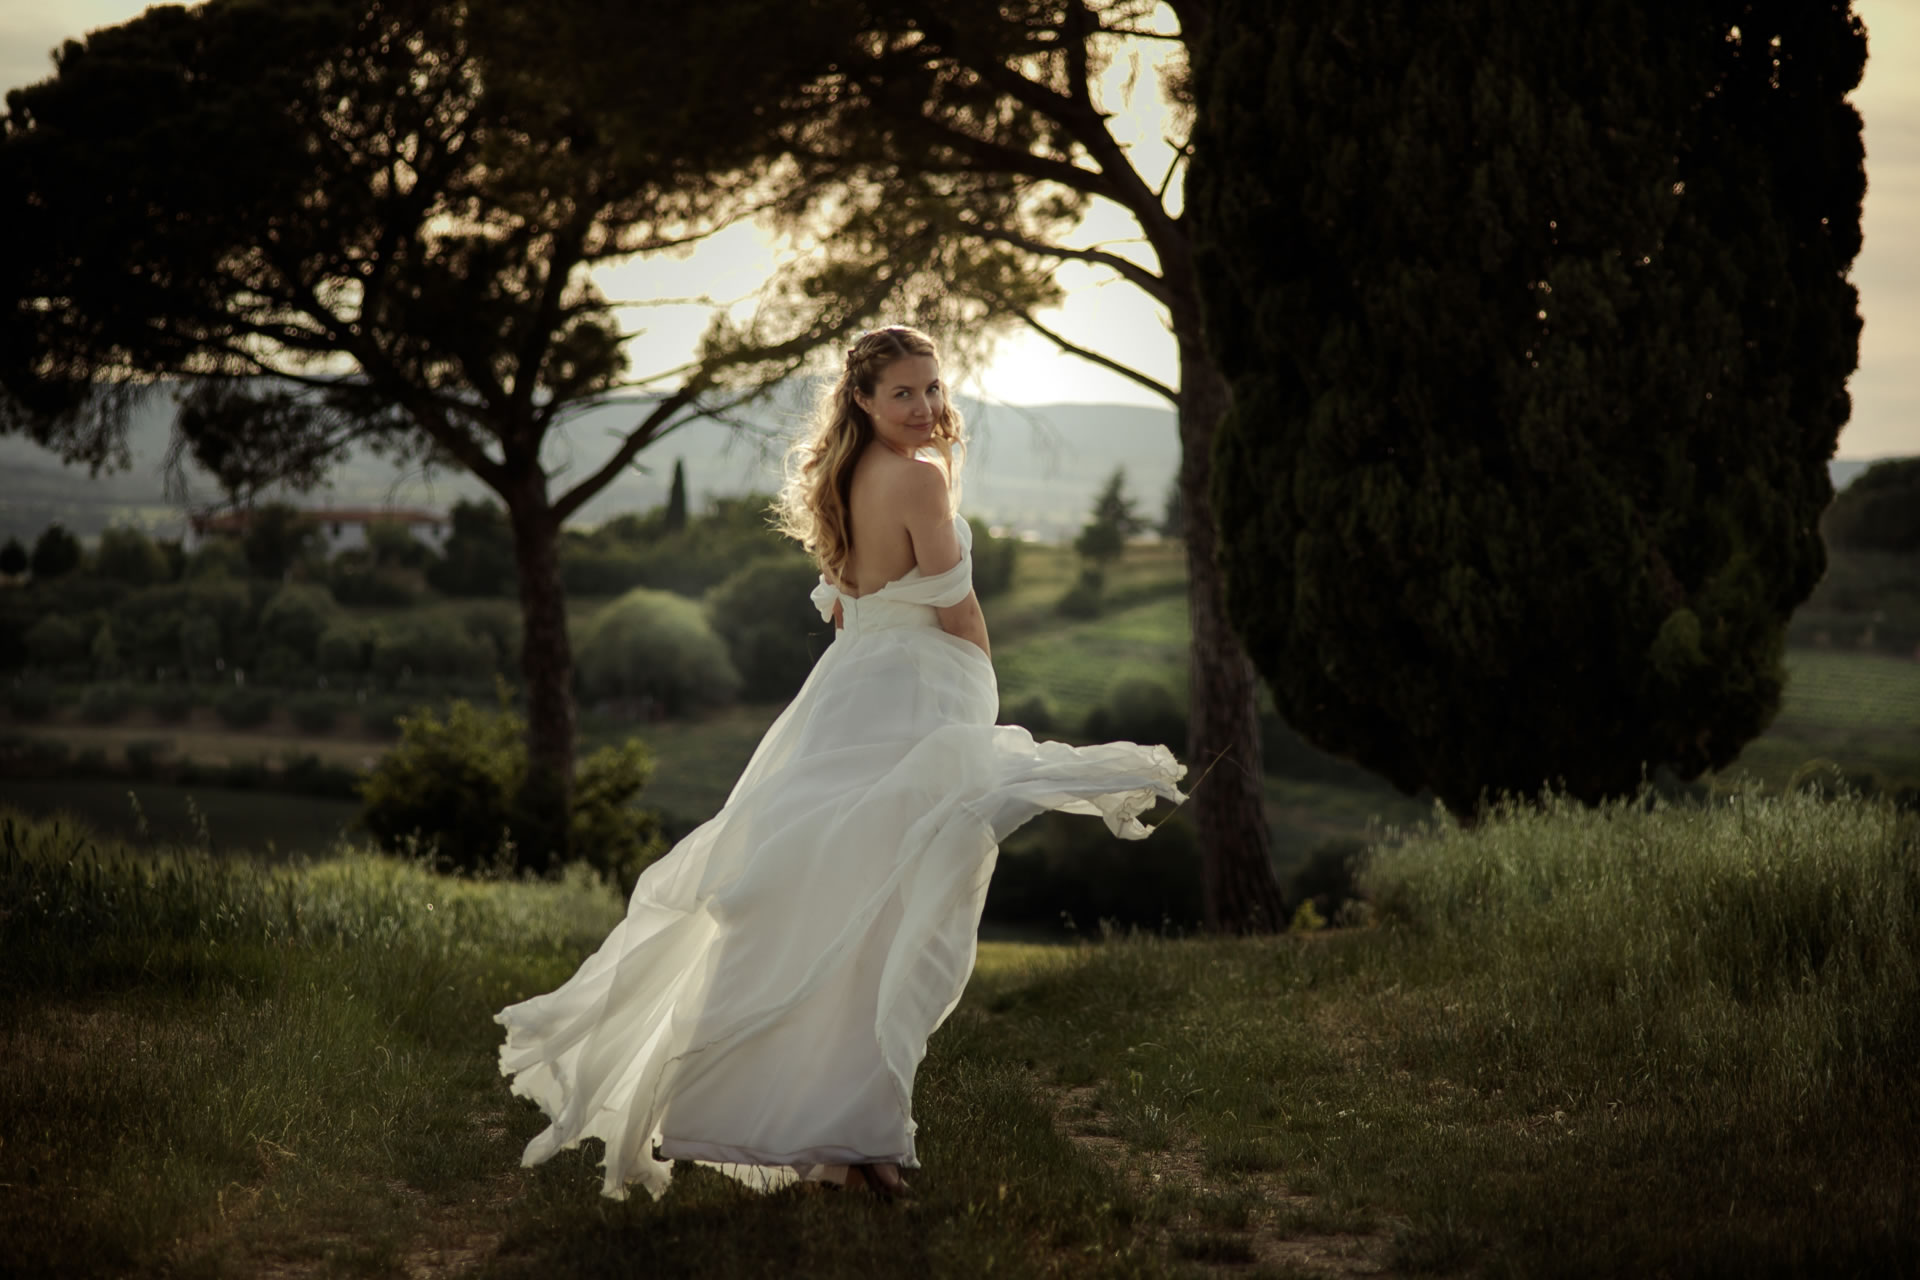 Simplicity - 27 :: Wedding in Perugia countryside. Jean and Toby :: Luxury wedding photography - 26 :: Simplicity - 27